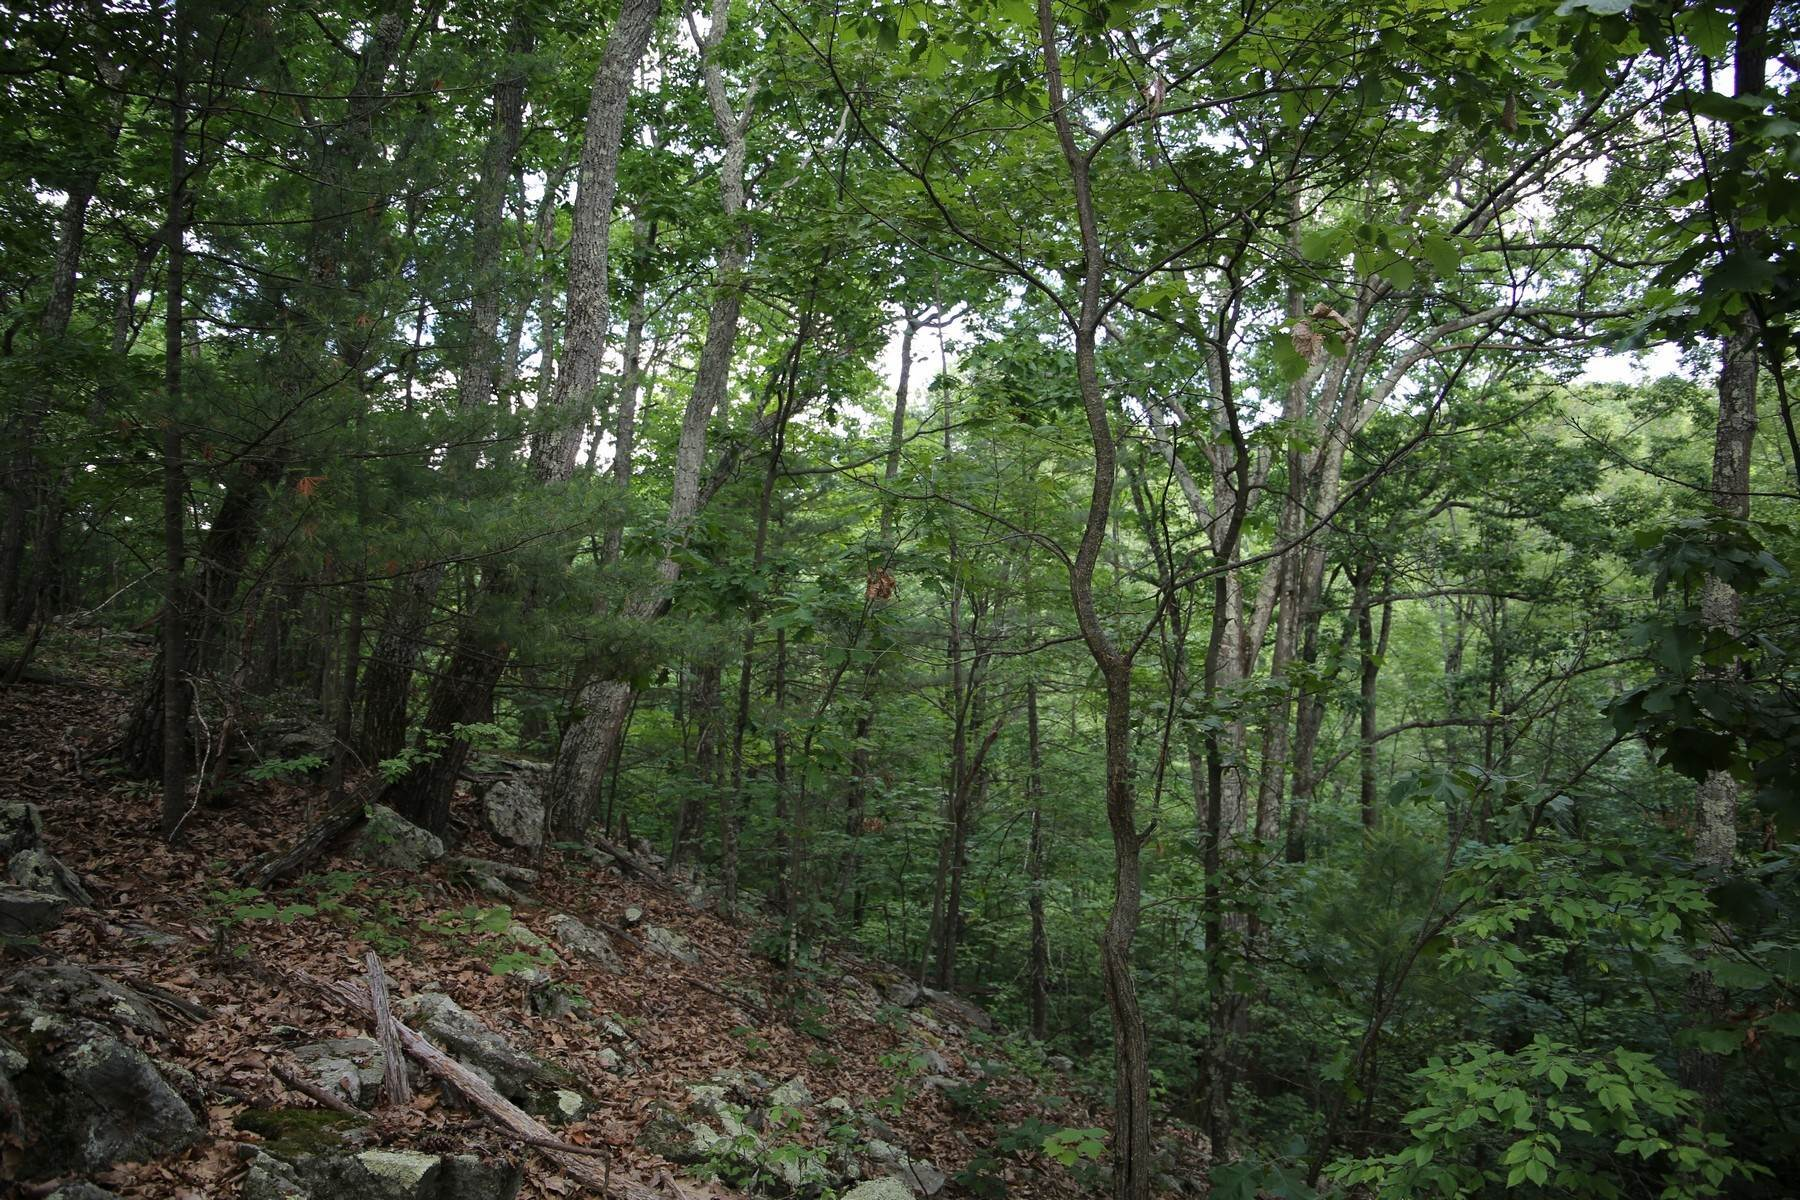 6. Land for Sale at Lily Lake Rd with access off Kisor Rd 70 Kisor (easement) Road, Lily Lake Rd Highland, New York 12528 United States